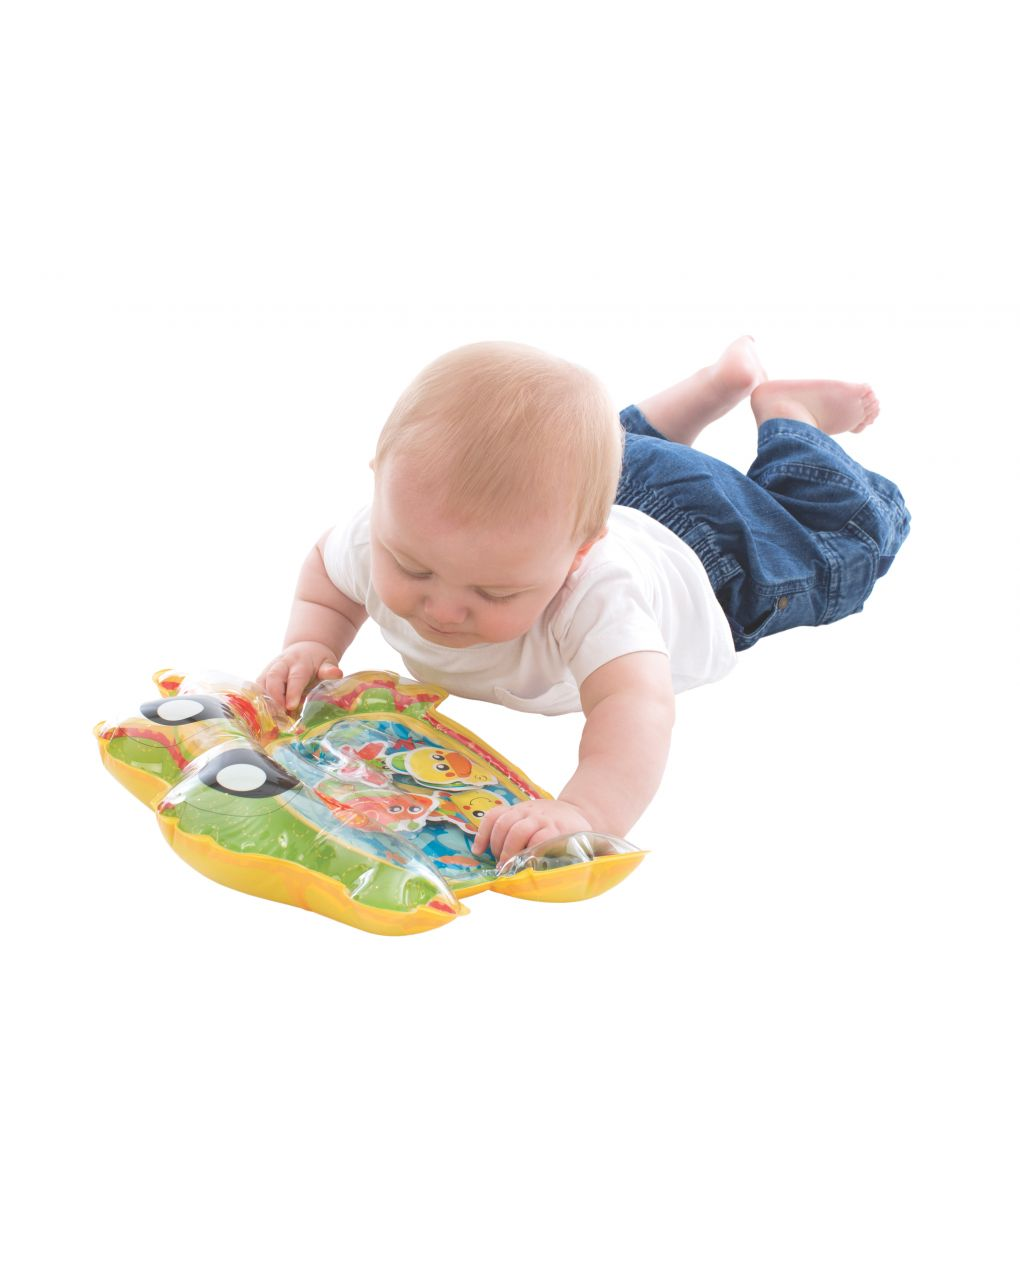 Playgro - pat and play water mat - Playgro